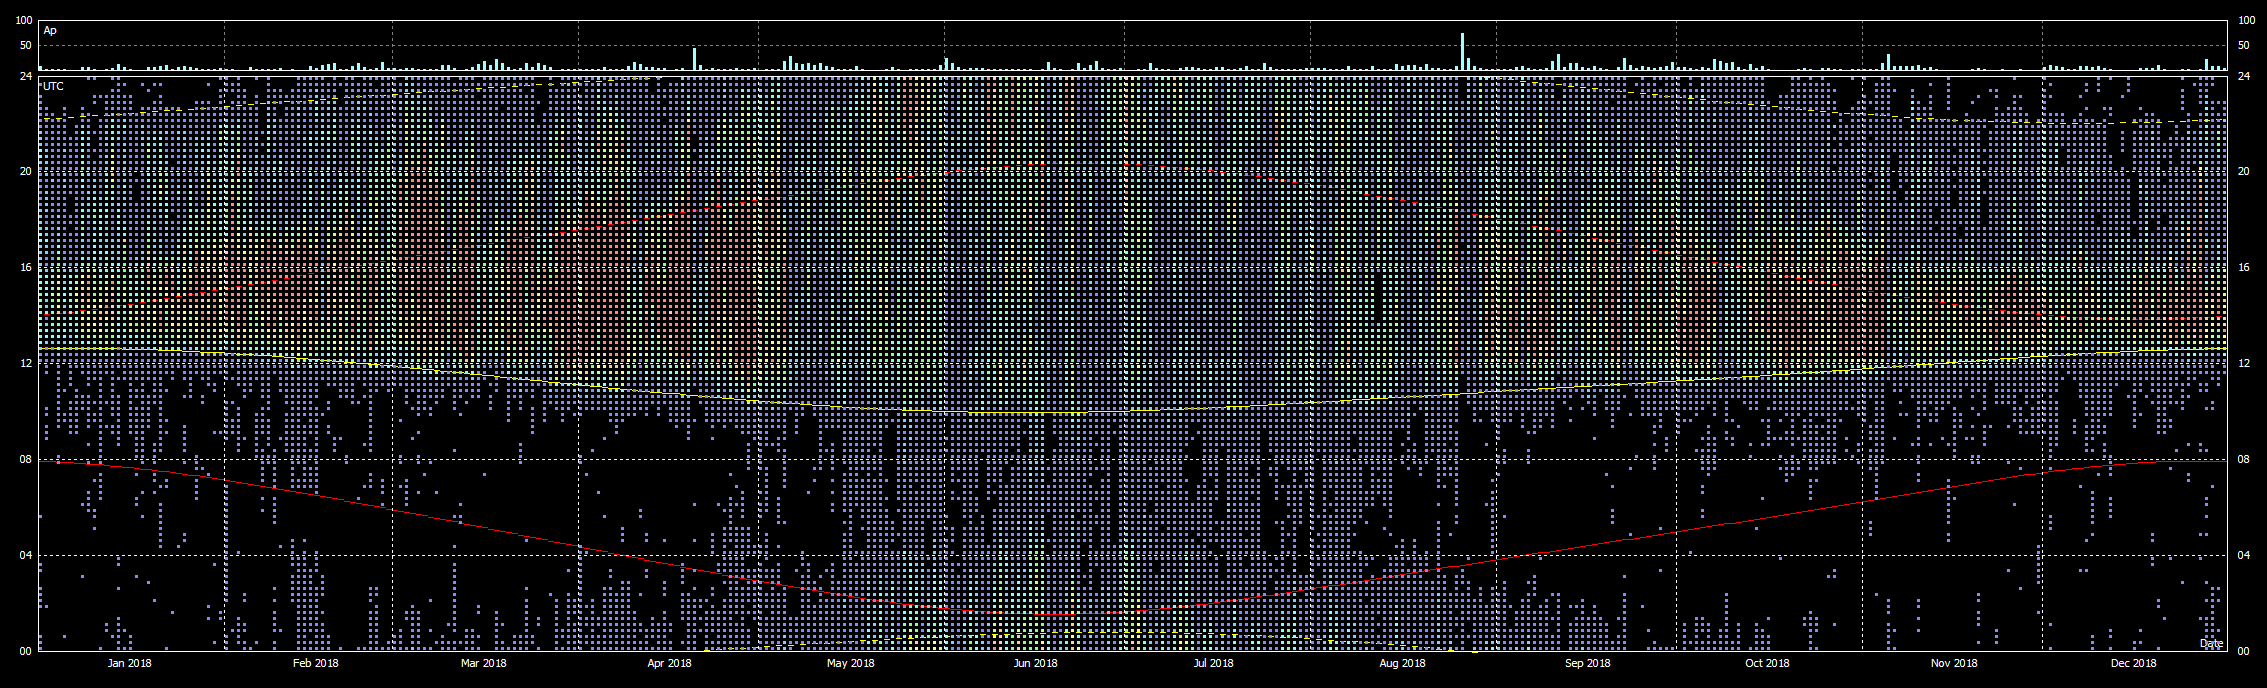 Propagation Visualized with FT8 Data